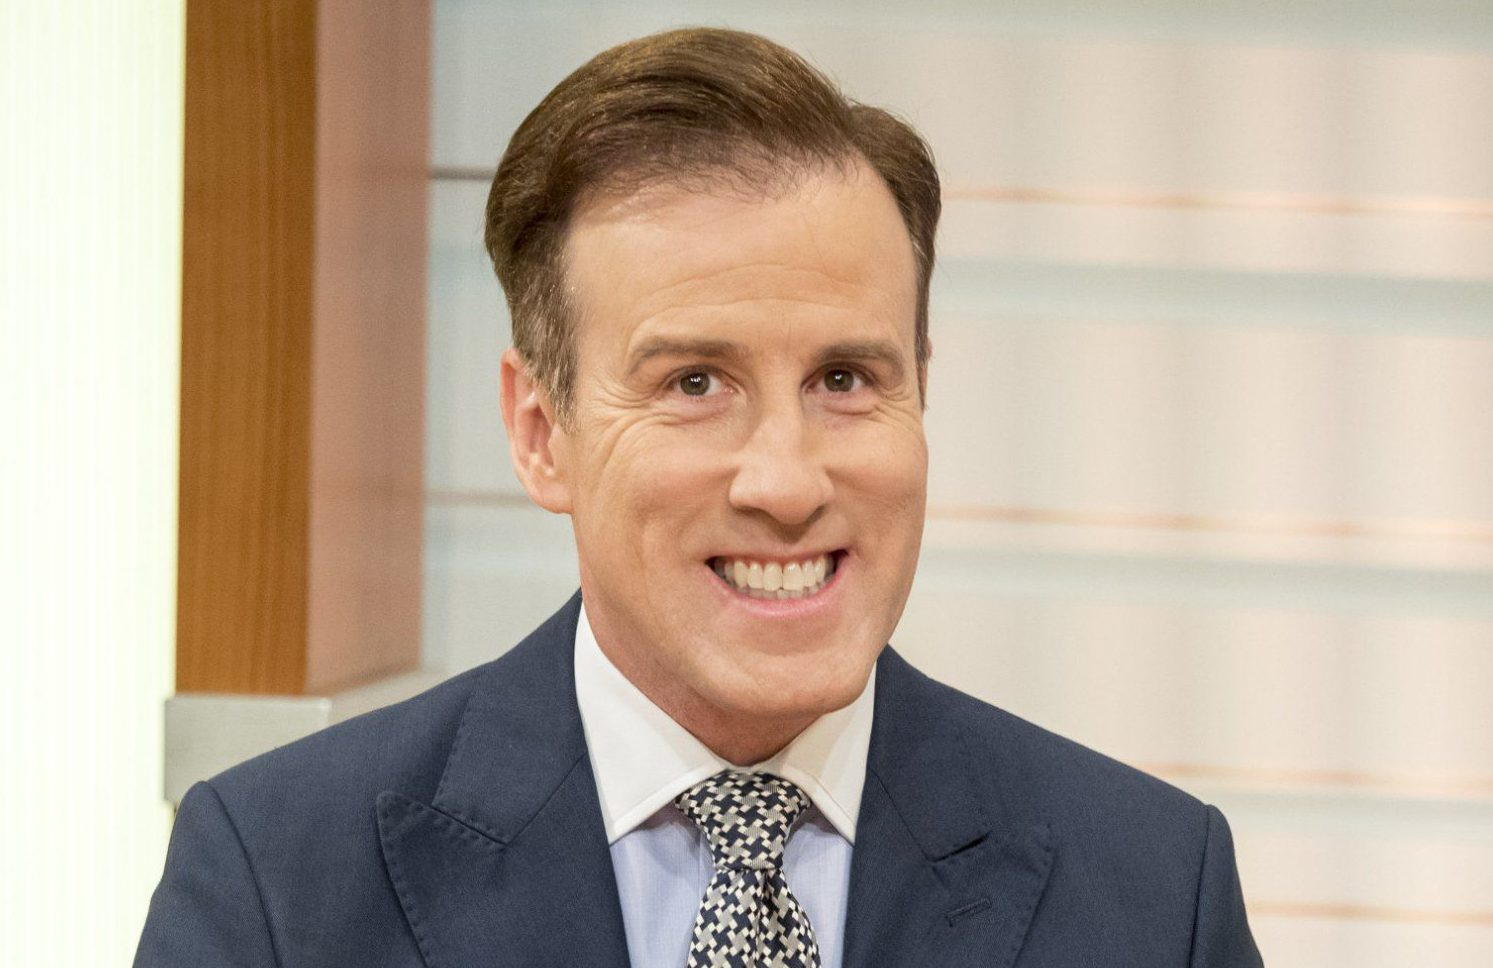 EDITORIAL USE ONLY. NO MERCHANDISING Mandatory Credit: Photo by Ken McKay/ITV/REX/Shutterstock (7533033v) Anton Du Beke 'Good Morning Britain' TV show, London, UK - 02 Dec 2016 Will Anton be the man to replace head judge Len Goodman after this year's series? Anton gives us his first interview after revealing his partner Hannah is three months pregnant after IVF treatment. Anton Du Beke and Erin Boag join us on the sofa to tell us about their national tour.